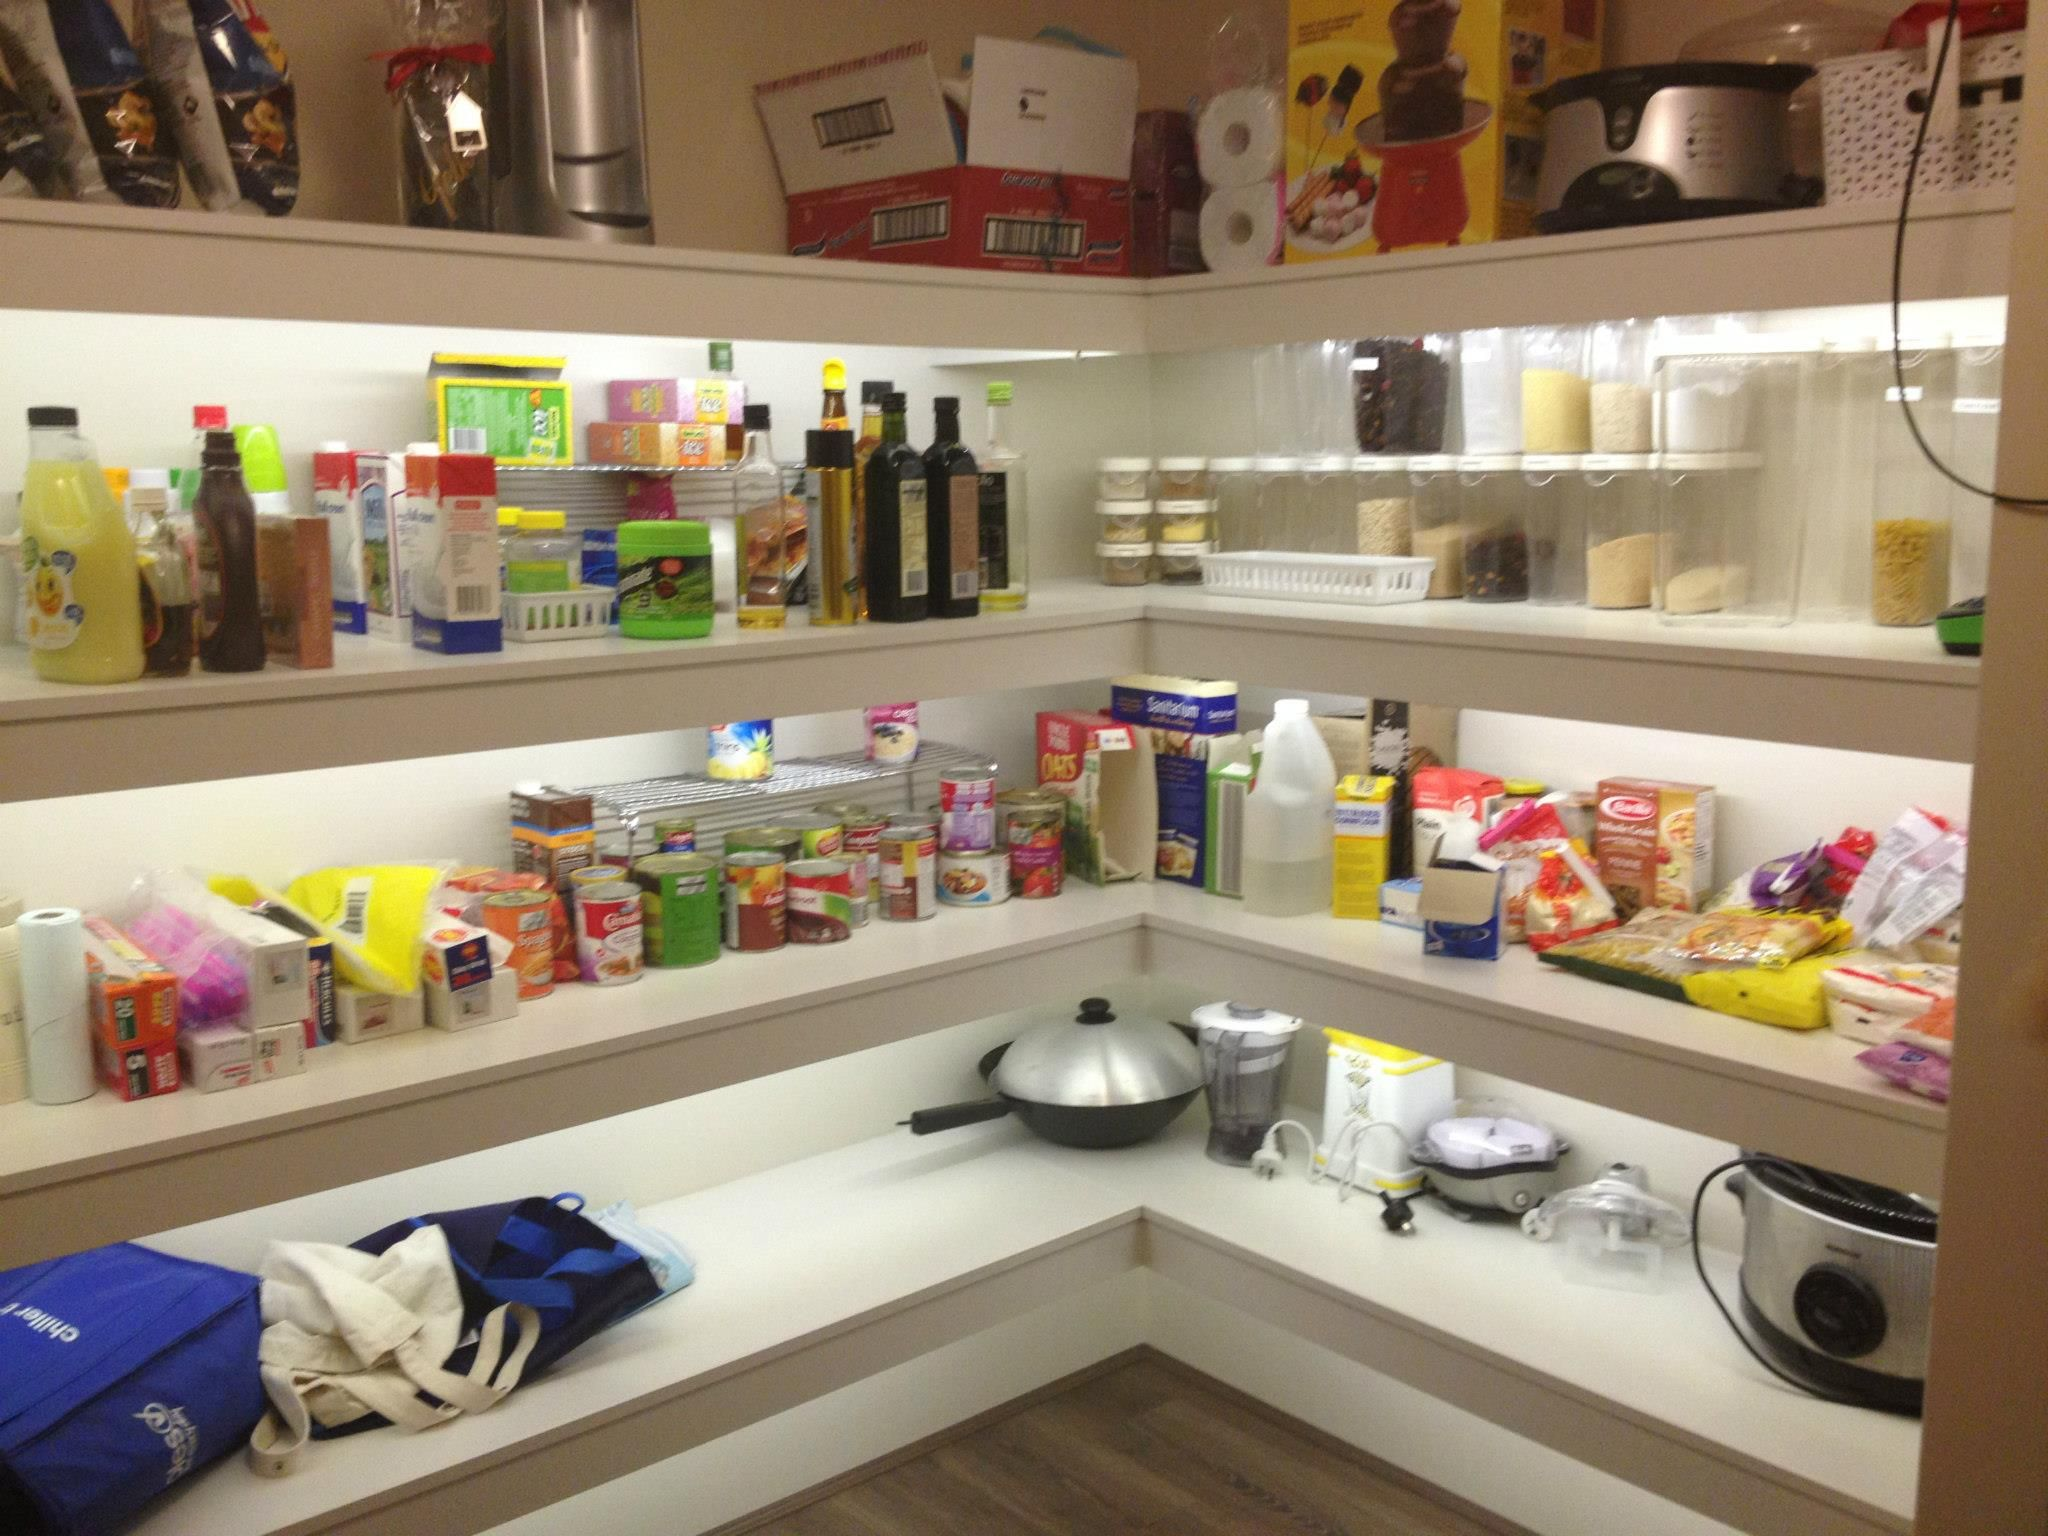 LED Strip Lighting In The Pantry